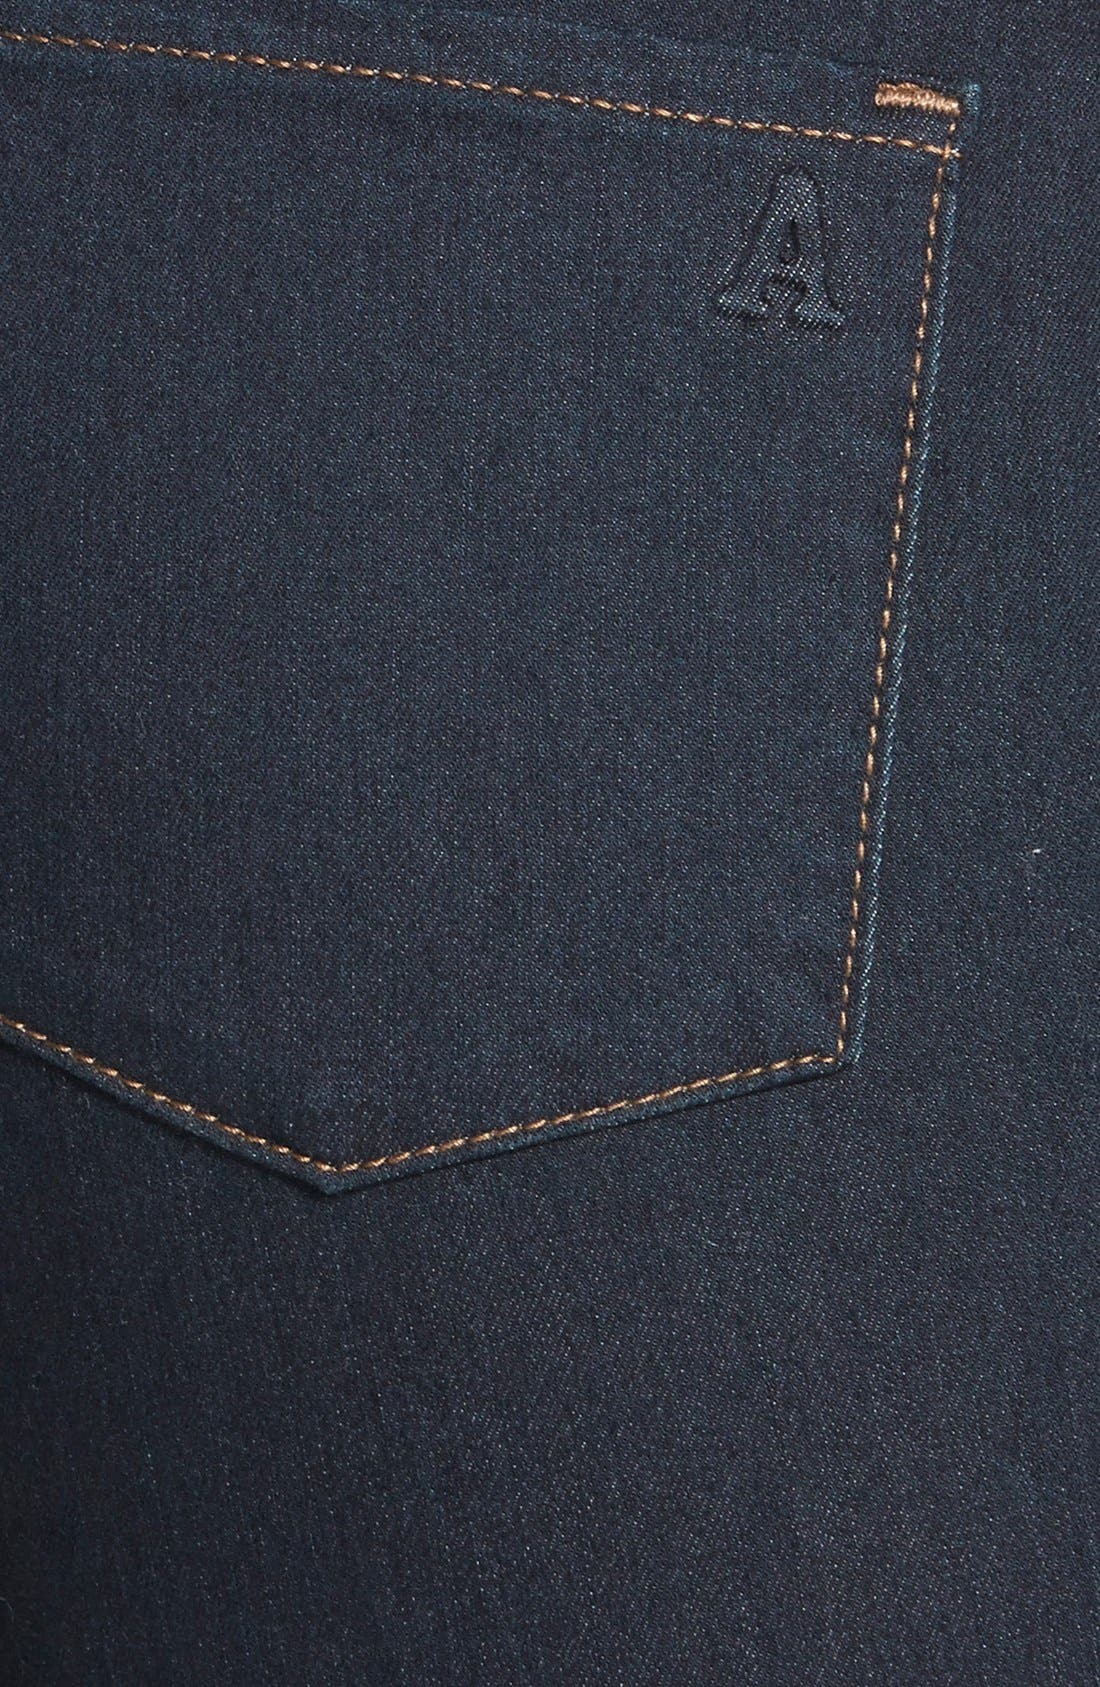 Alternate Image 3  - Articles of Society 'Halley' High Waist Stretch Skinny Jeans